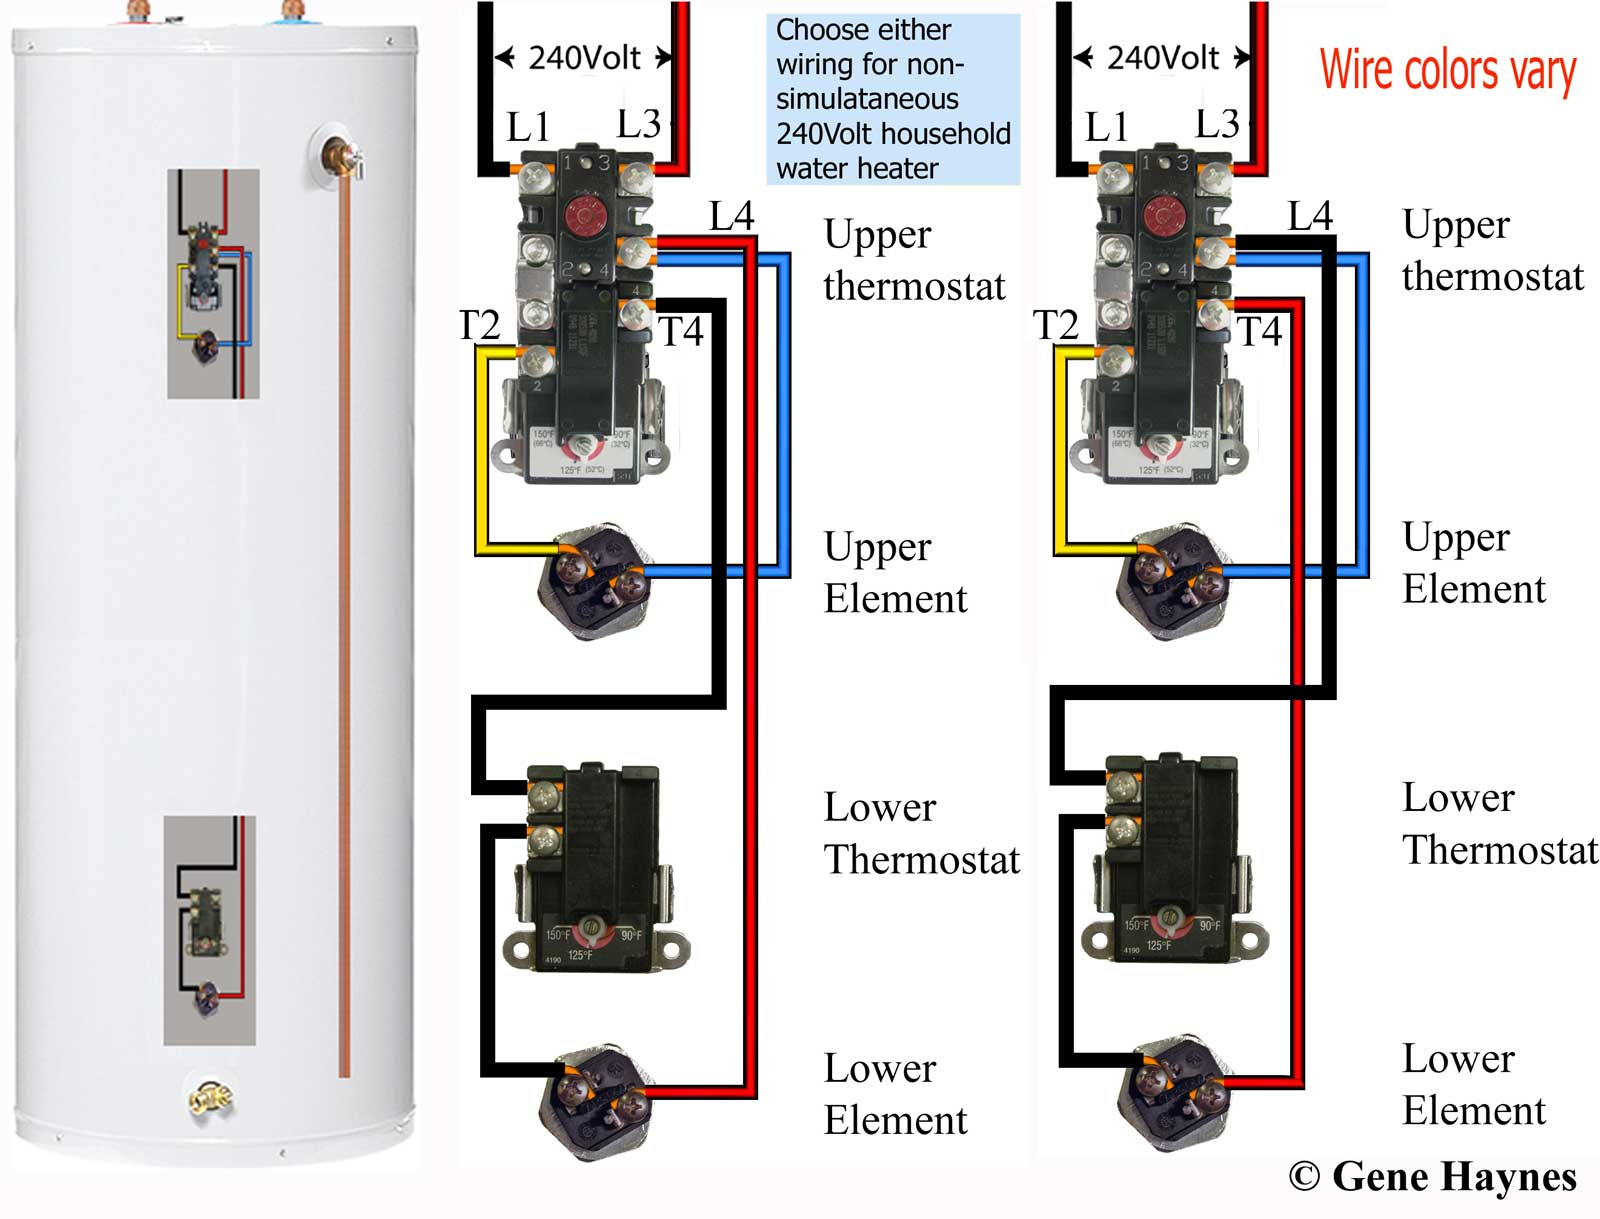 Wiring Diagram For Hot Water Heater | Manual E-Books - Hot Water Heater Wiring Diagram